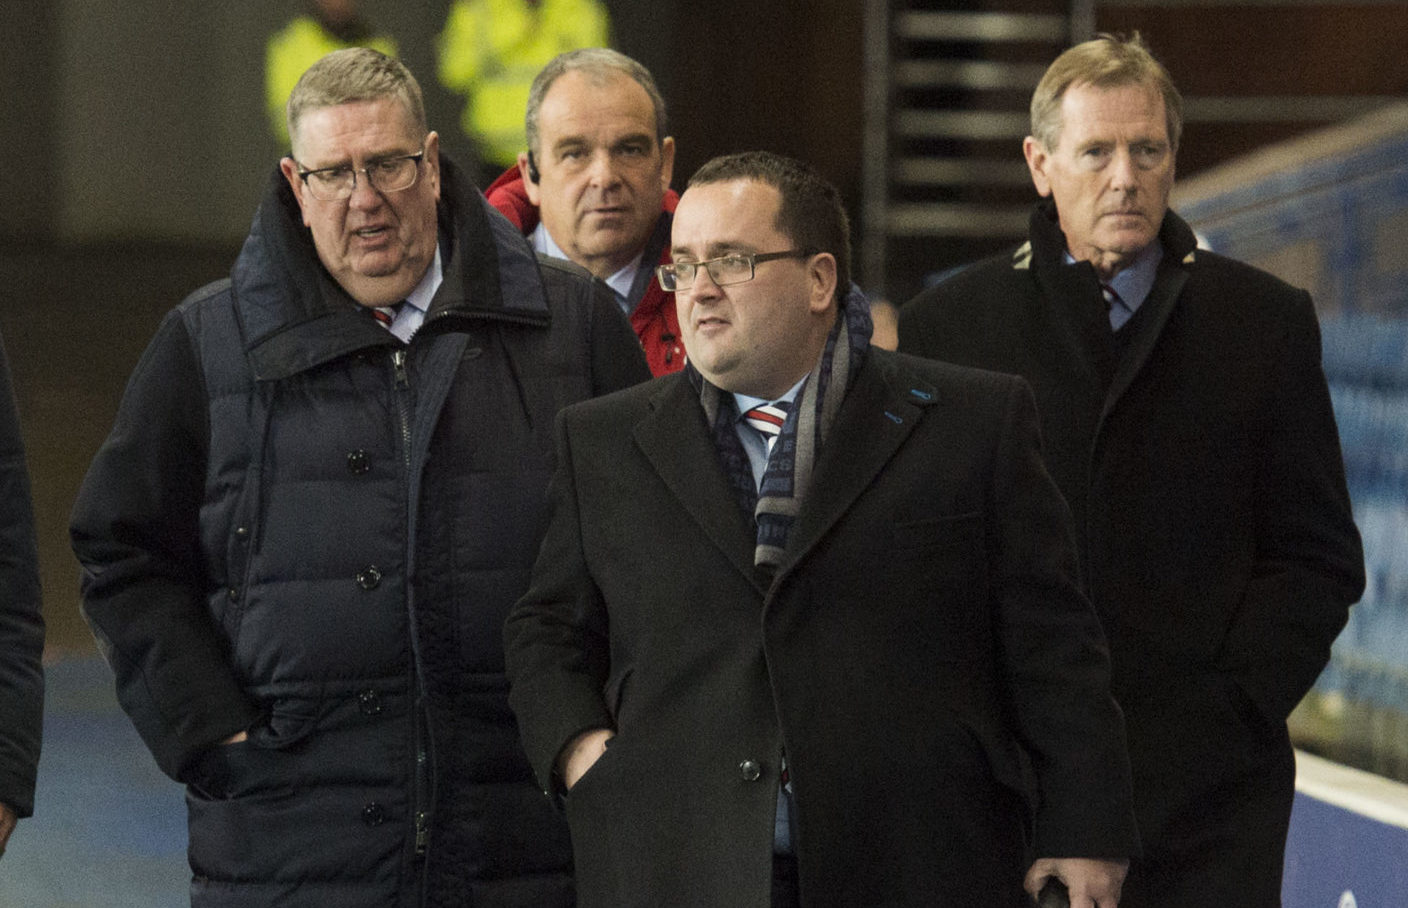 Douglas Park (left) at Ibrox with Dave King and his son, Graeme, who remains on the Ibrox Board